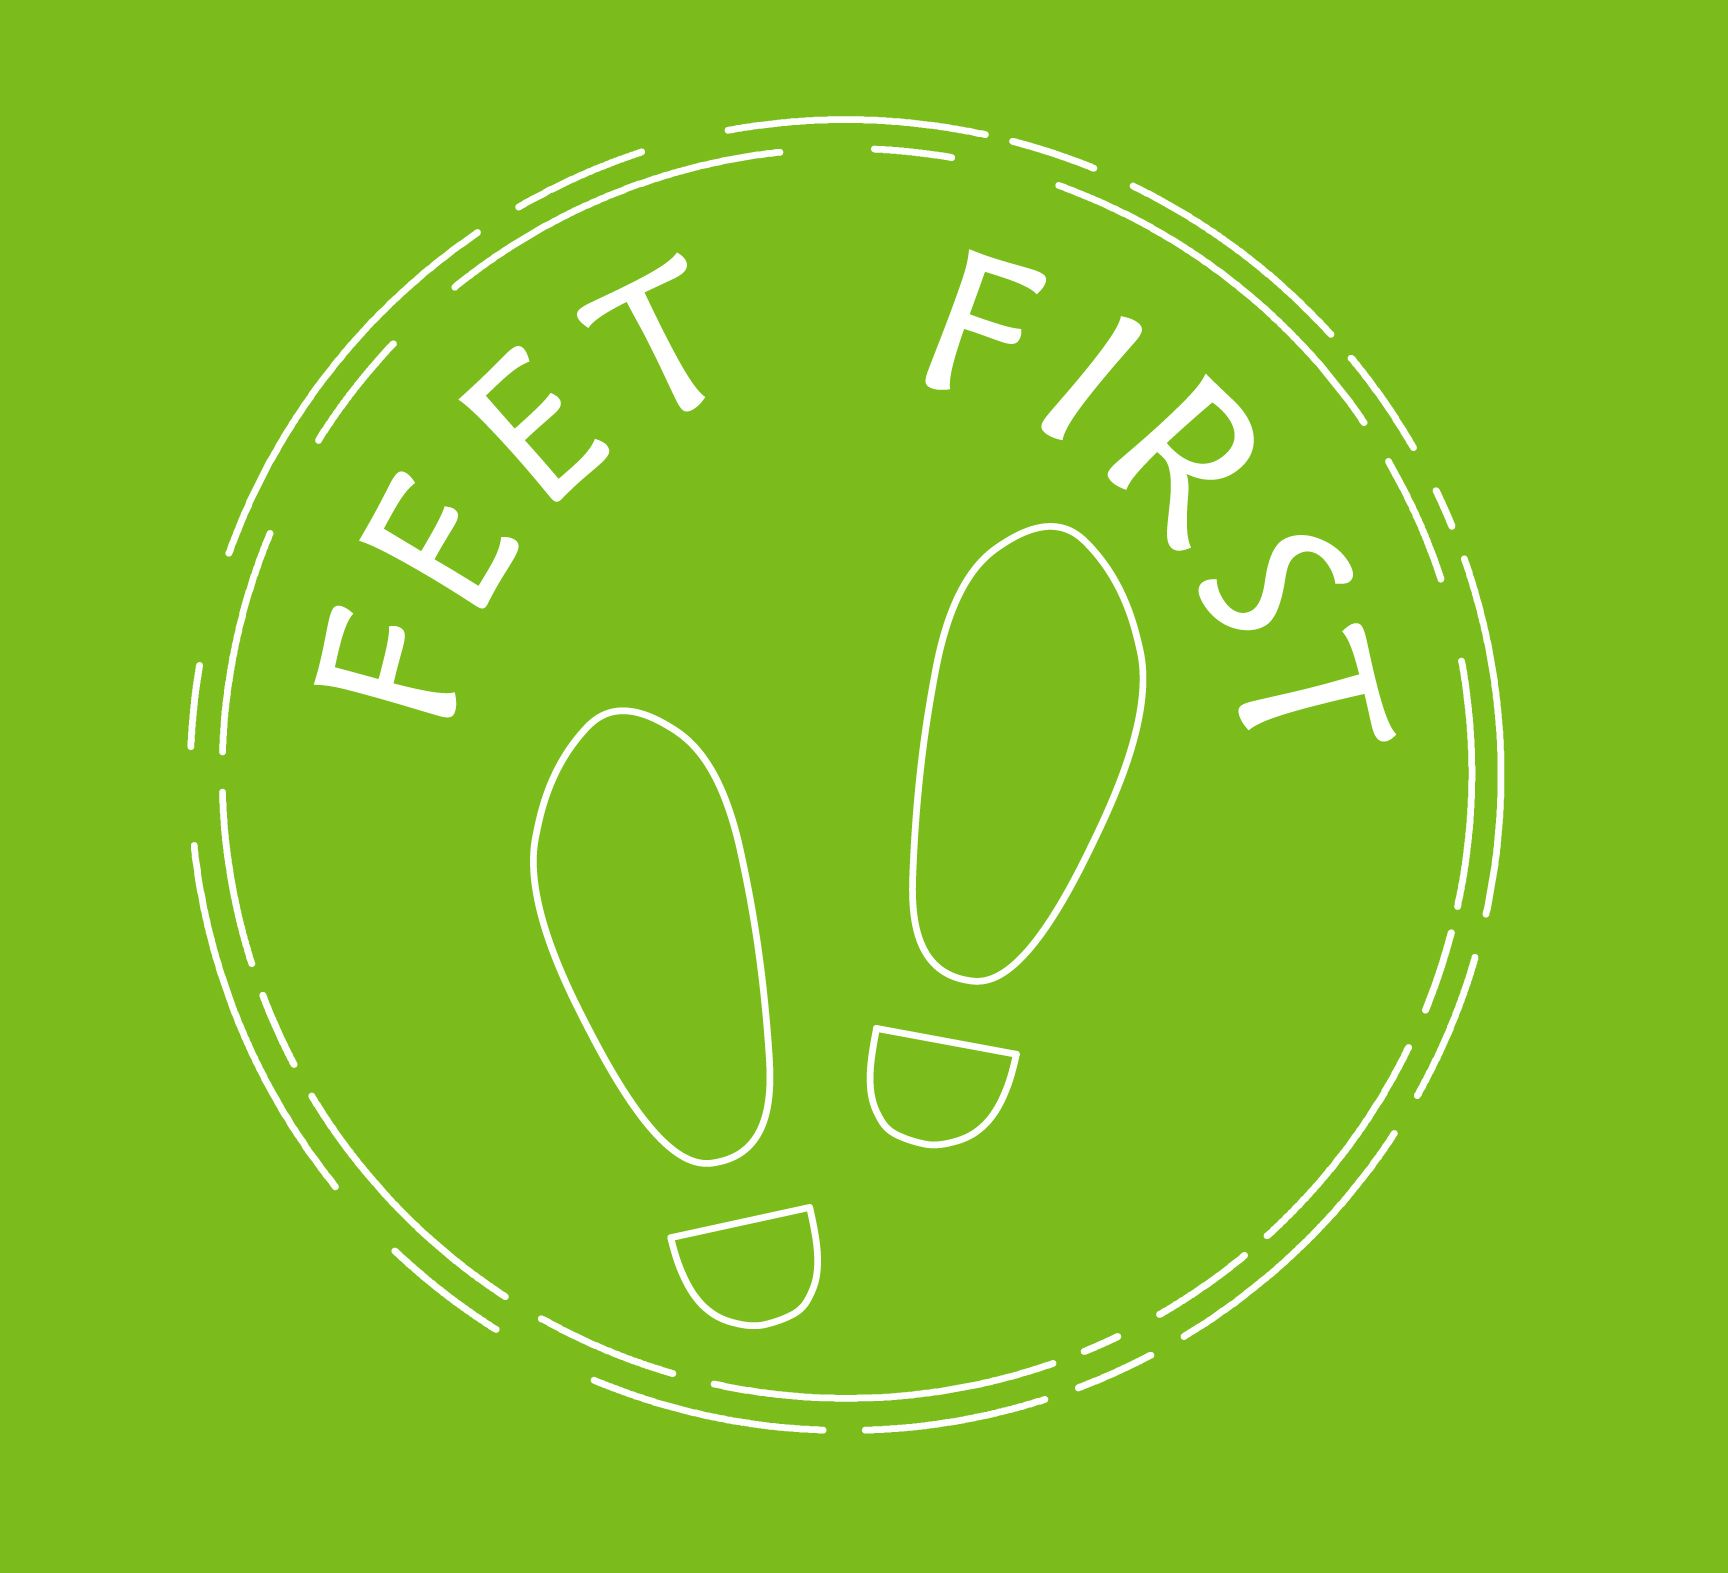 #feetfirst #milfordcentre